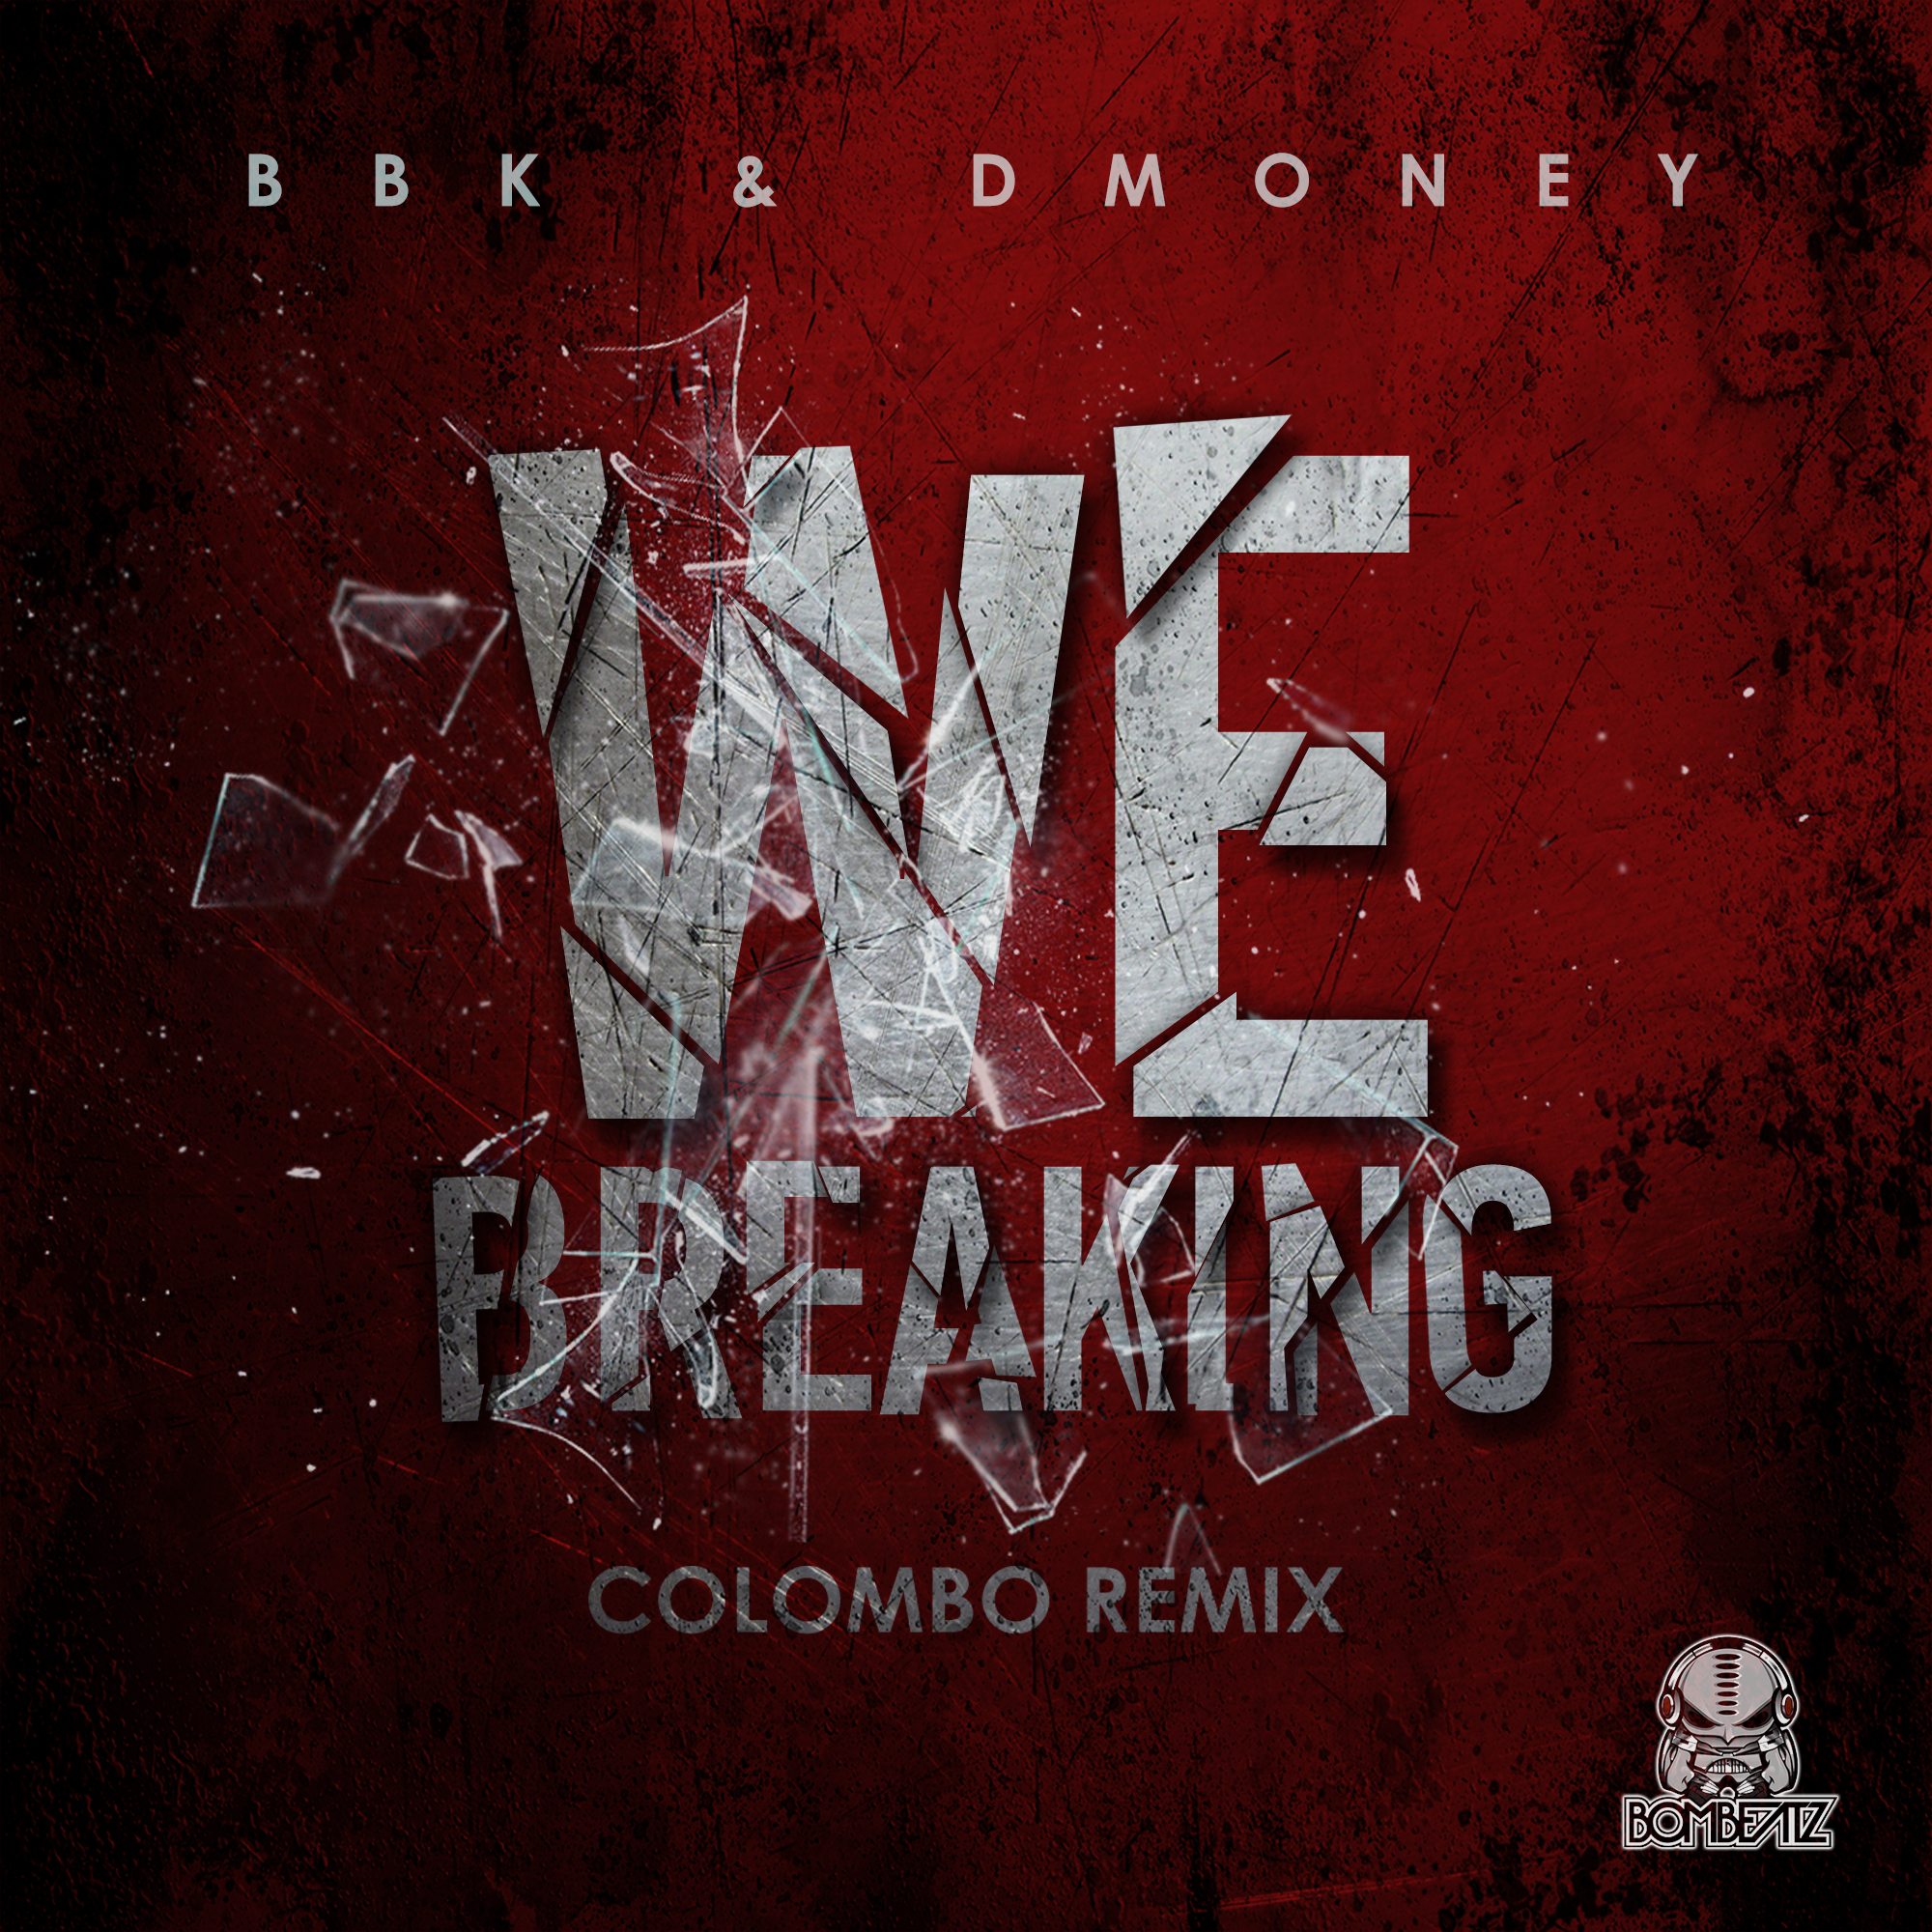 BBk & Dmoney  - We Breaking - Colombo Remix.jpg